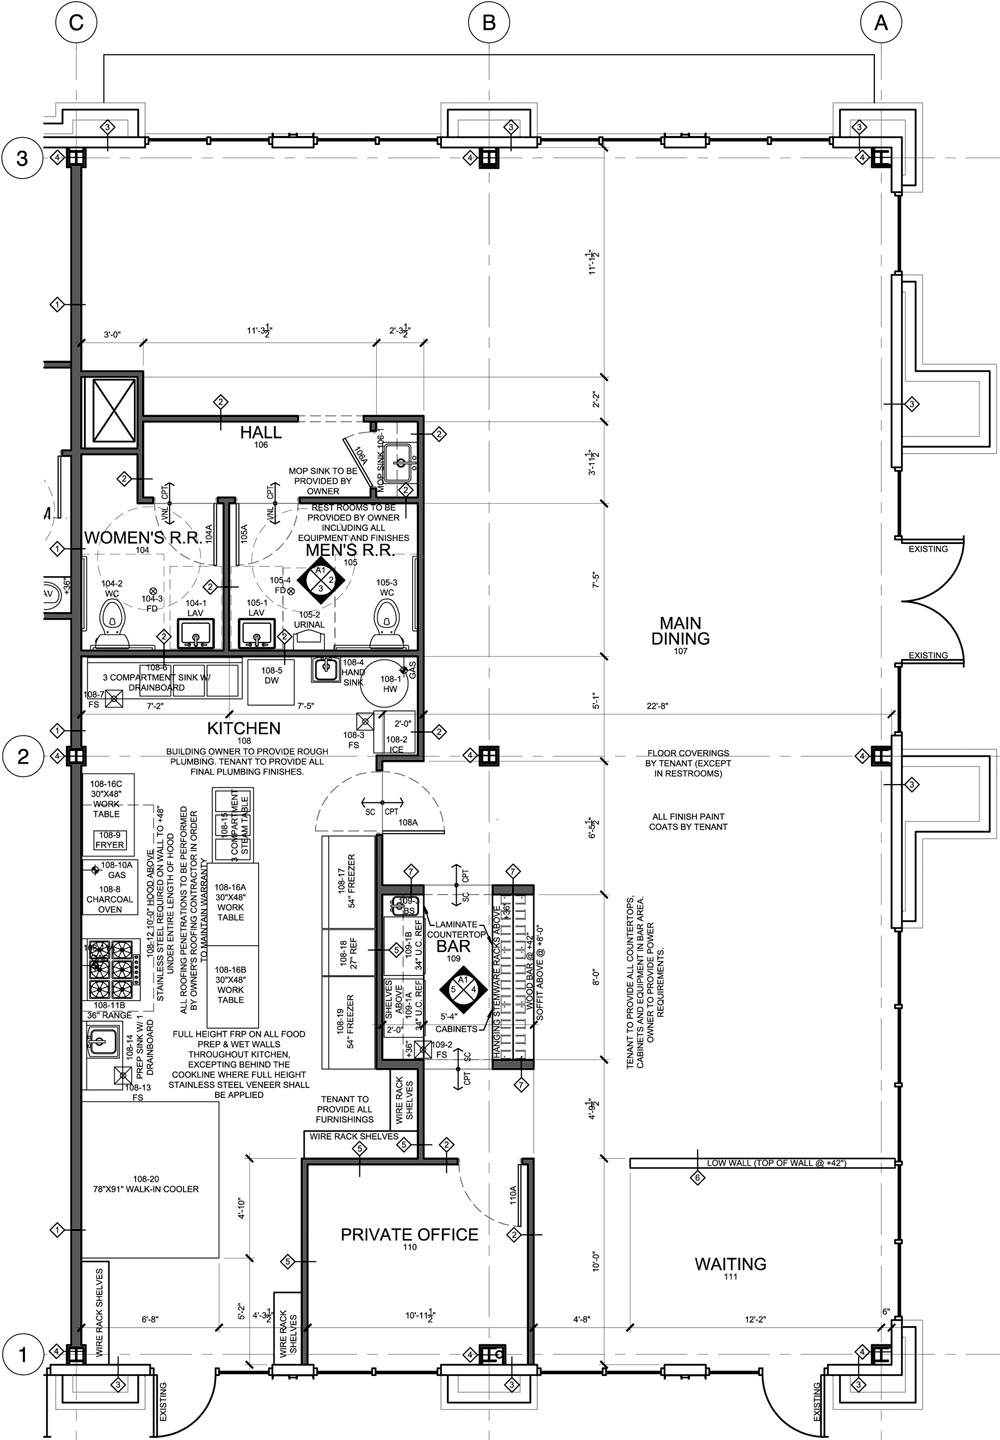 restaurant floor plan for tenant improvement  u2013 taste of himalaya nepalese restaurant